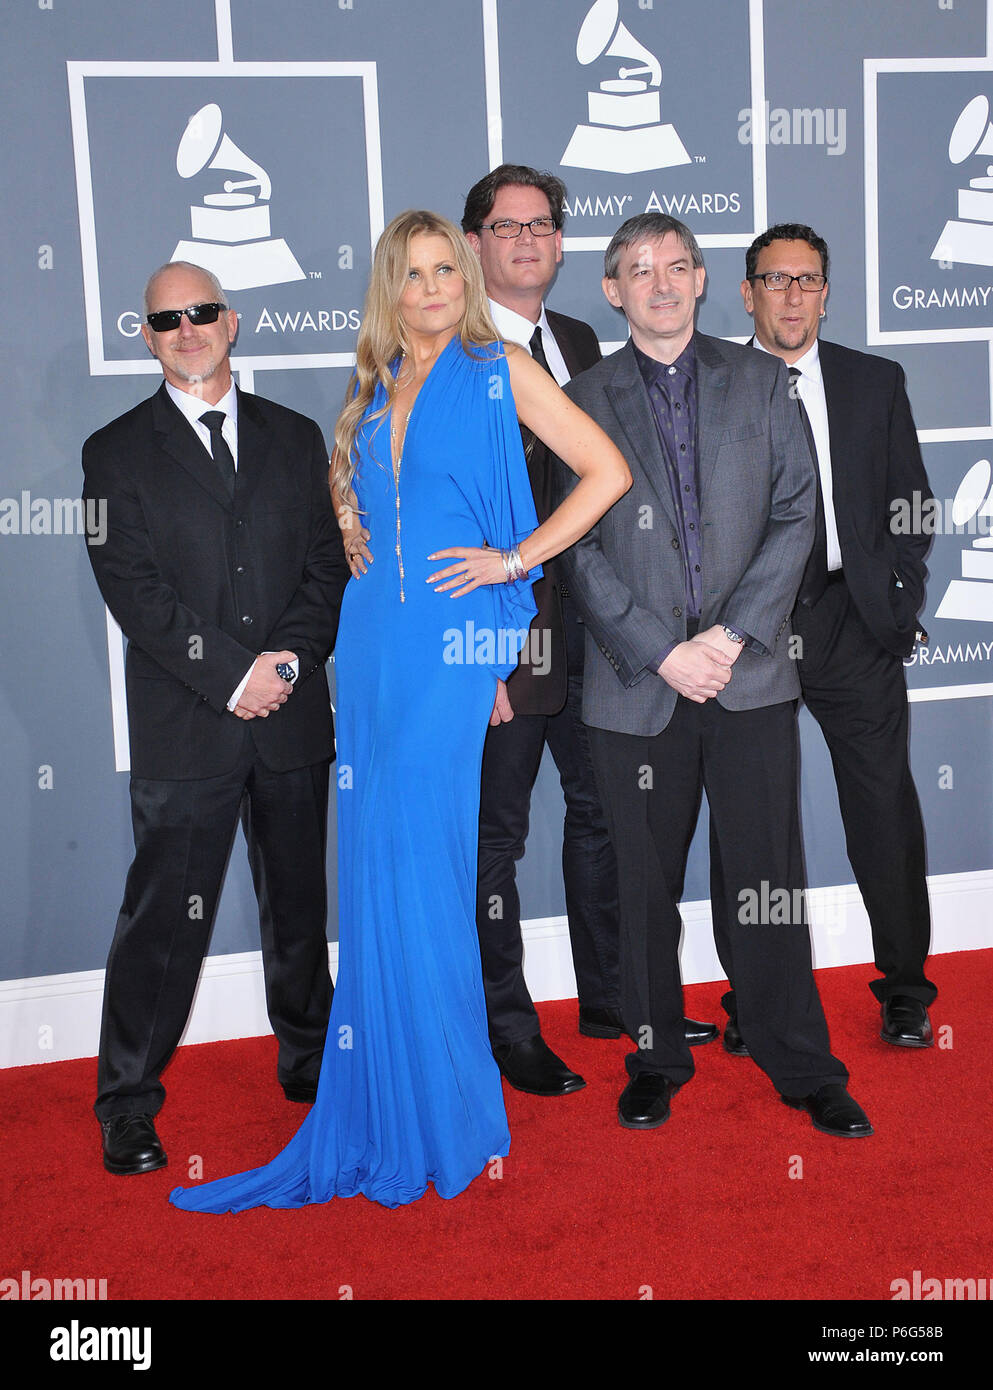 Tierney Sutton Band 74 At The 54th Annual Grammy Awards 2012 At The Staples Center In Los Angeles Tierney Sutton Band 74 Event In Hollywood Life California Red Carpet Event Usa